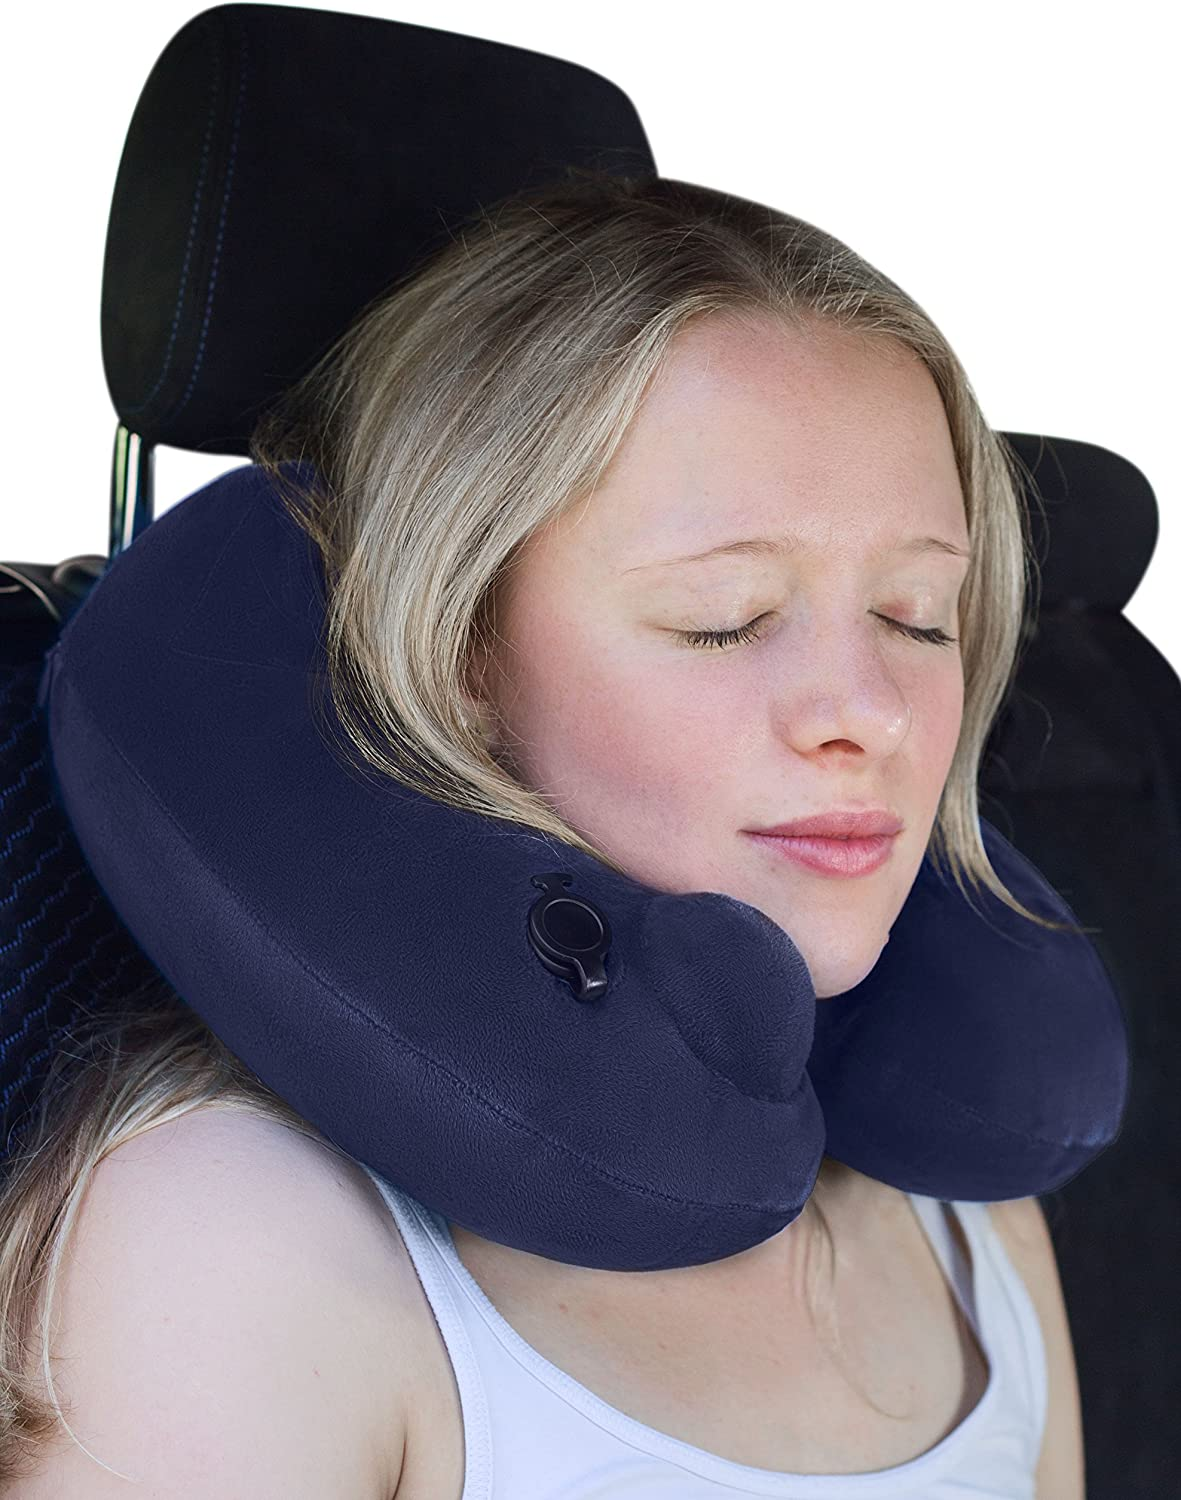 Super Soft Fleece with Sanitary Push-Valve Technology for a Relaxing Sleep on a Plane etc Inflatable Neck roll Pillow - Machine-Washable Small and Lightweight musegear/® Travel Pillow Deluxe